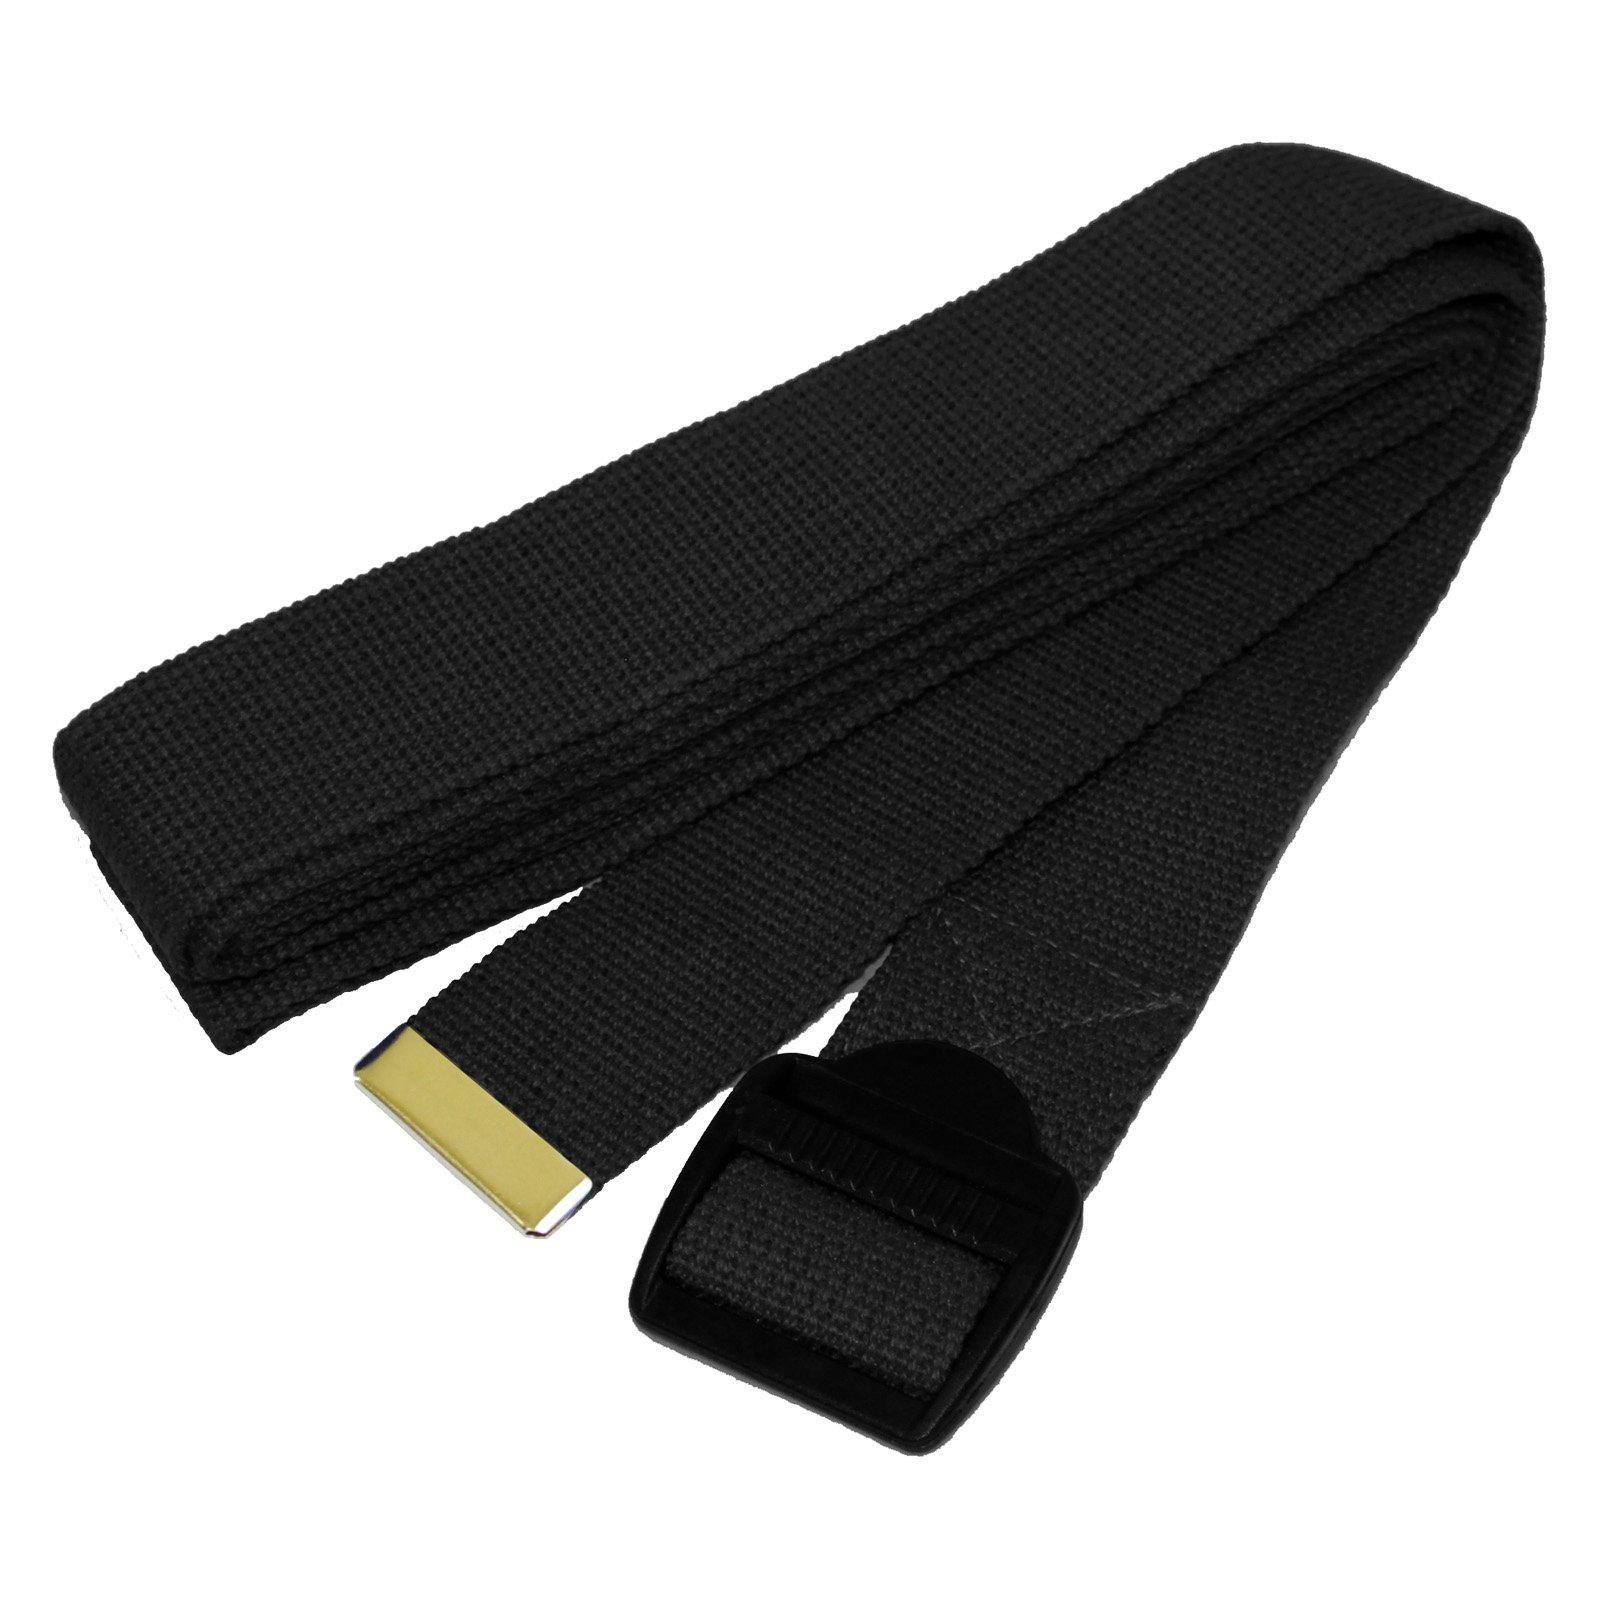 Yoga Direct Yoga Strap with Plastic Buckle